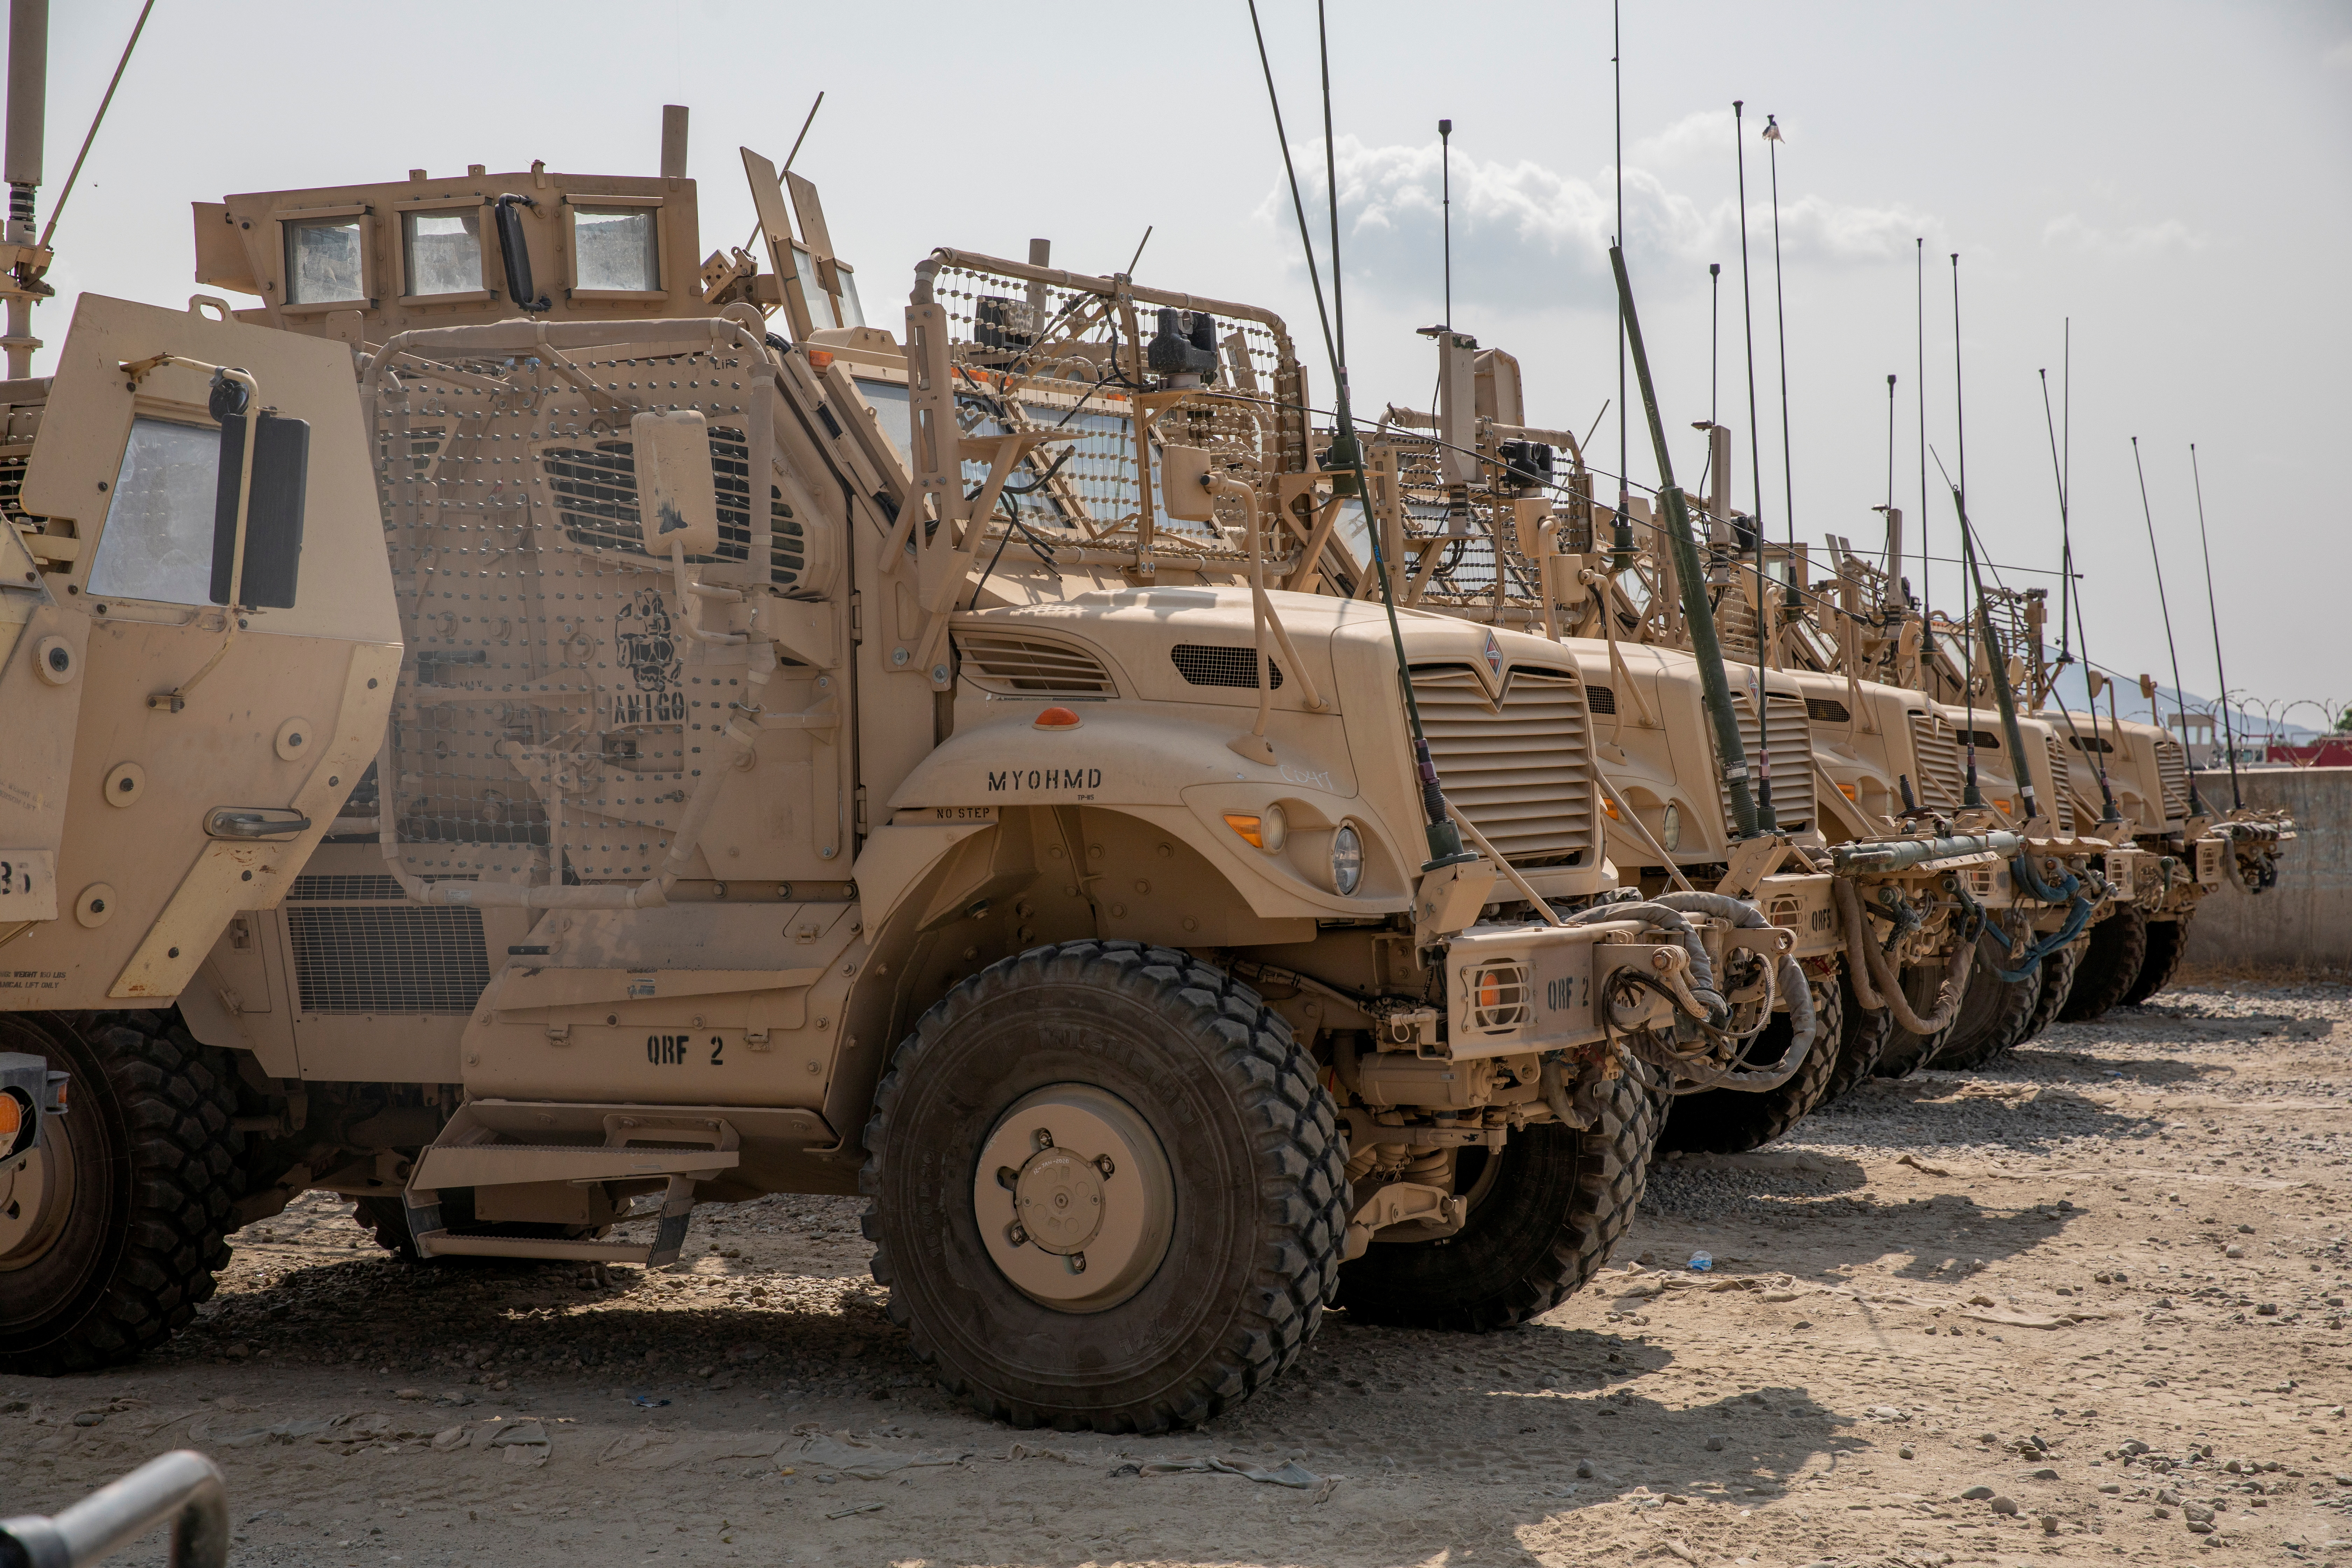 U.S. Army soldiers from the 10th Mountain Division and U.S. contractors prepare Mine Resistant Ambush Protected vehicles, MRAPs, to be transported off of base in support of the withdrawal mission in Kandahar, Afghanistan, August 21, 2020. Picture taken August 21, 2020. U.S. Army/Sgt. Jeffery J. Harris/Handout via REUTERS